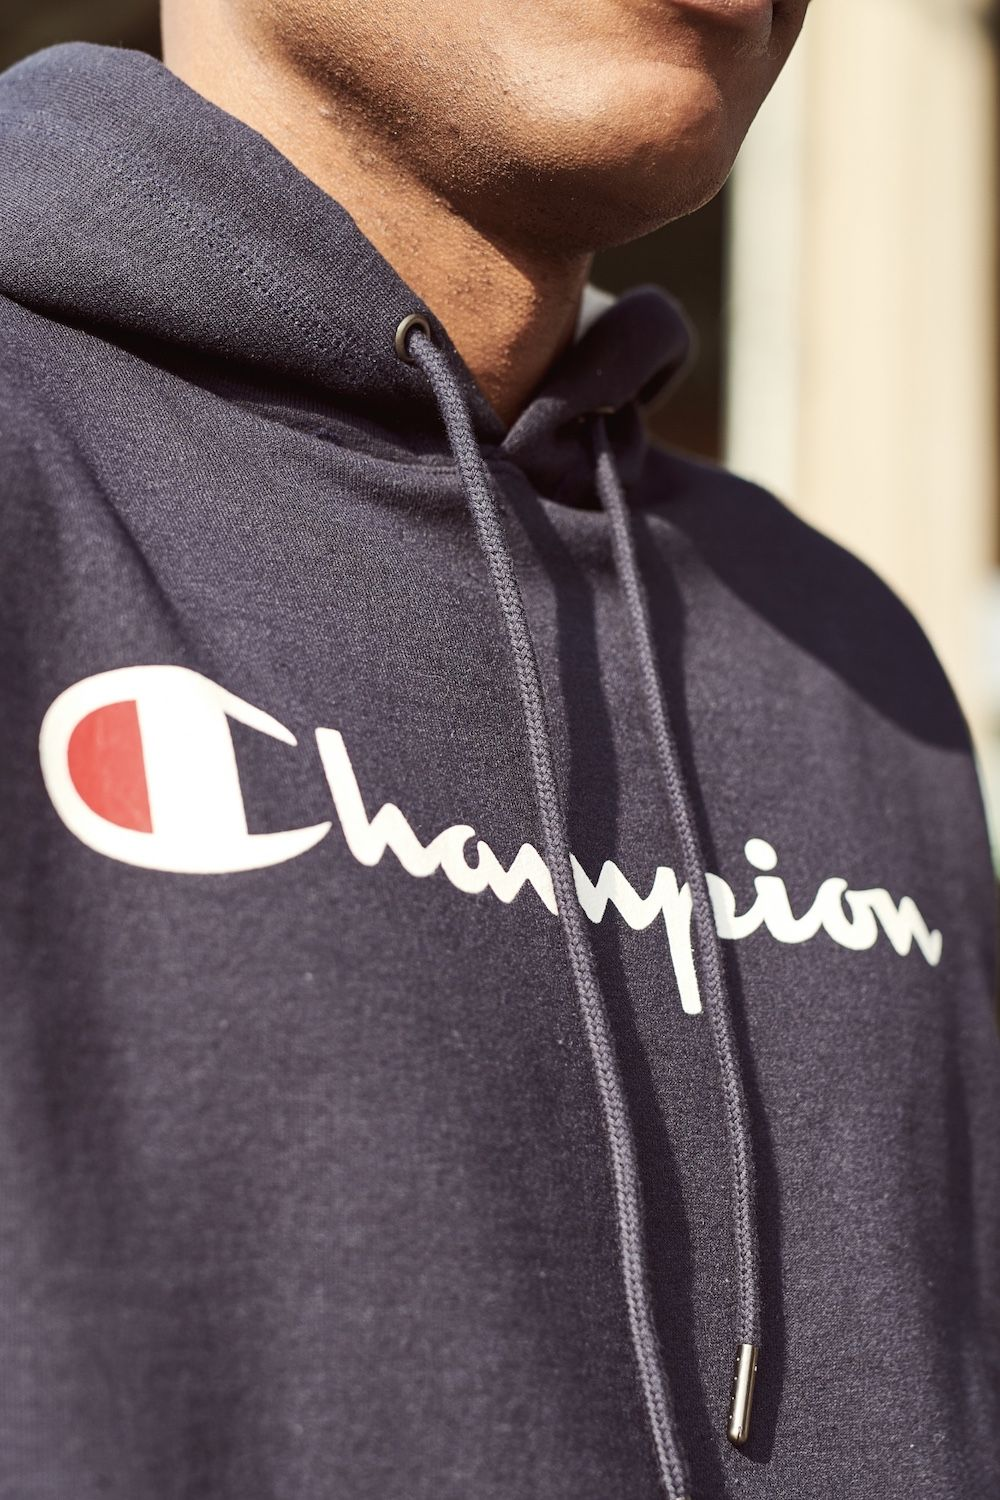 Pin By Champion On Sweats Champion Clothing Hoodies Cute Outfits [ 1500 x 1000 Pixel ]